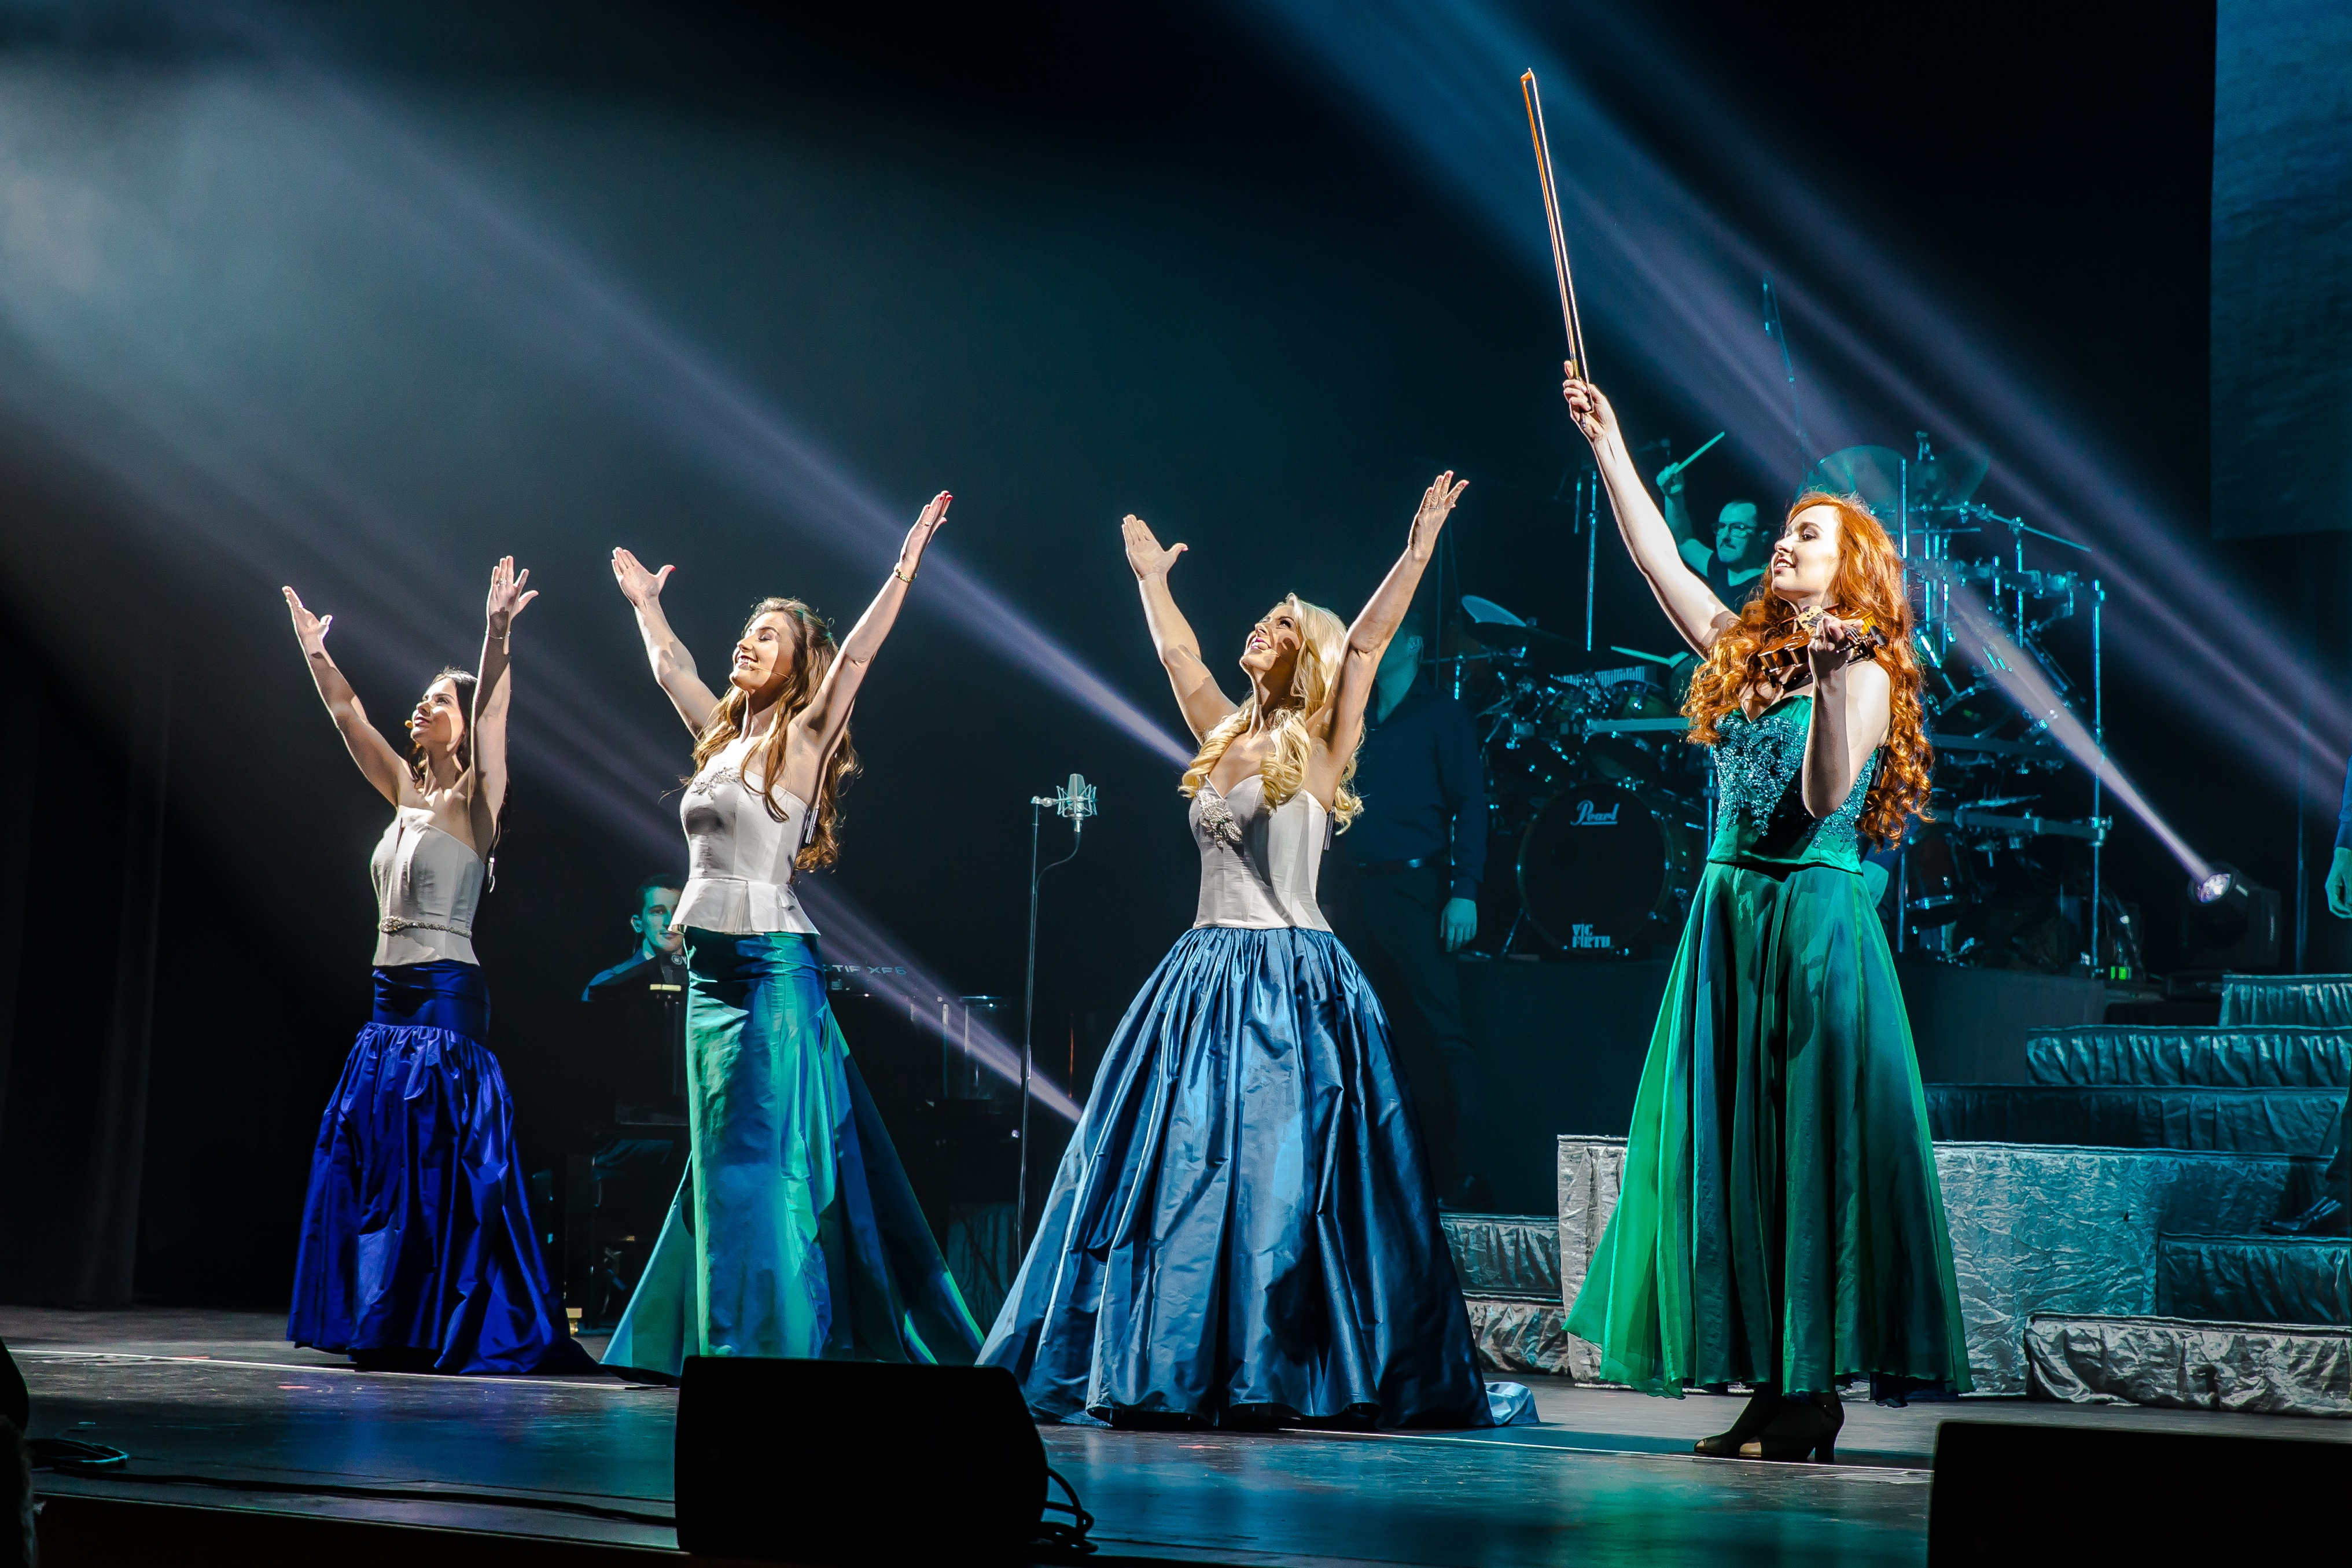 Celtic Woman performed a lovely and skilled concert at  Shea's Performing Arts Center. (Photo by Troy Fisher)